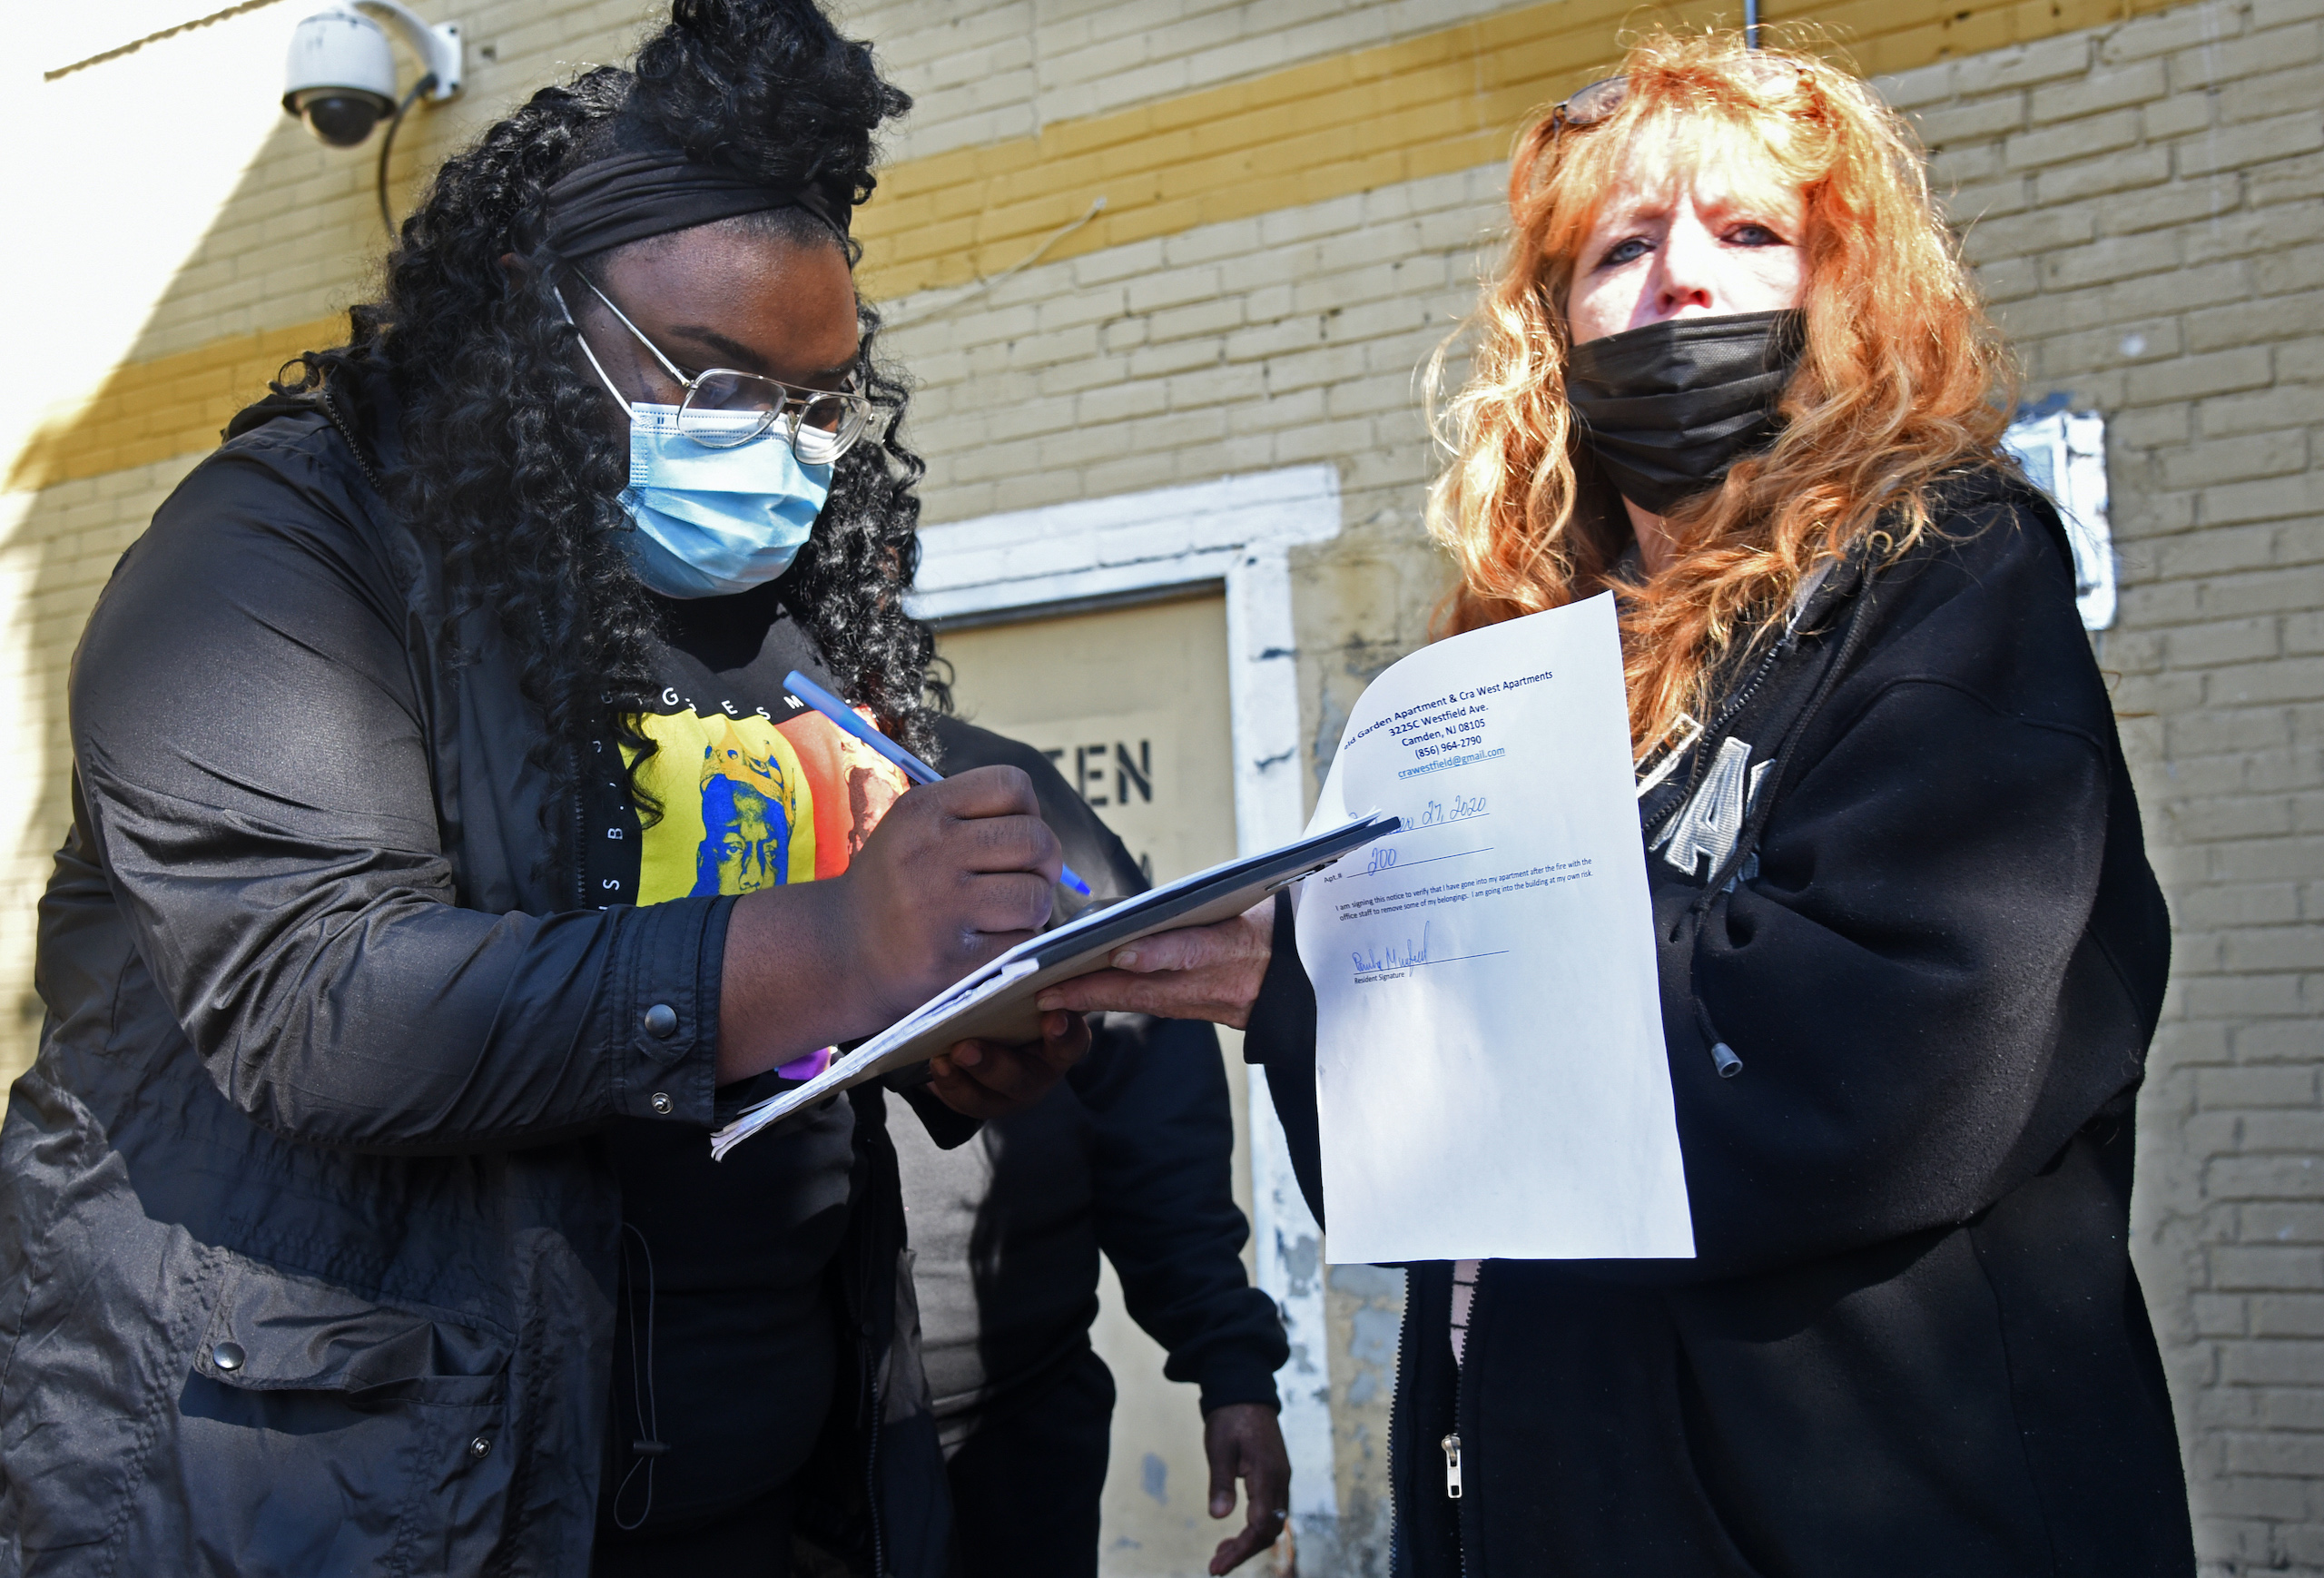 Renant Jessica Lynn signs a document allowing her to retrieve belongings from the apartment she shared with her mother; at right is property manager Gidget Bower